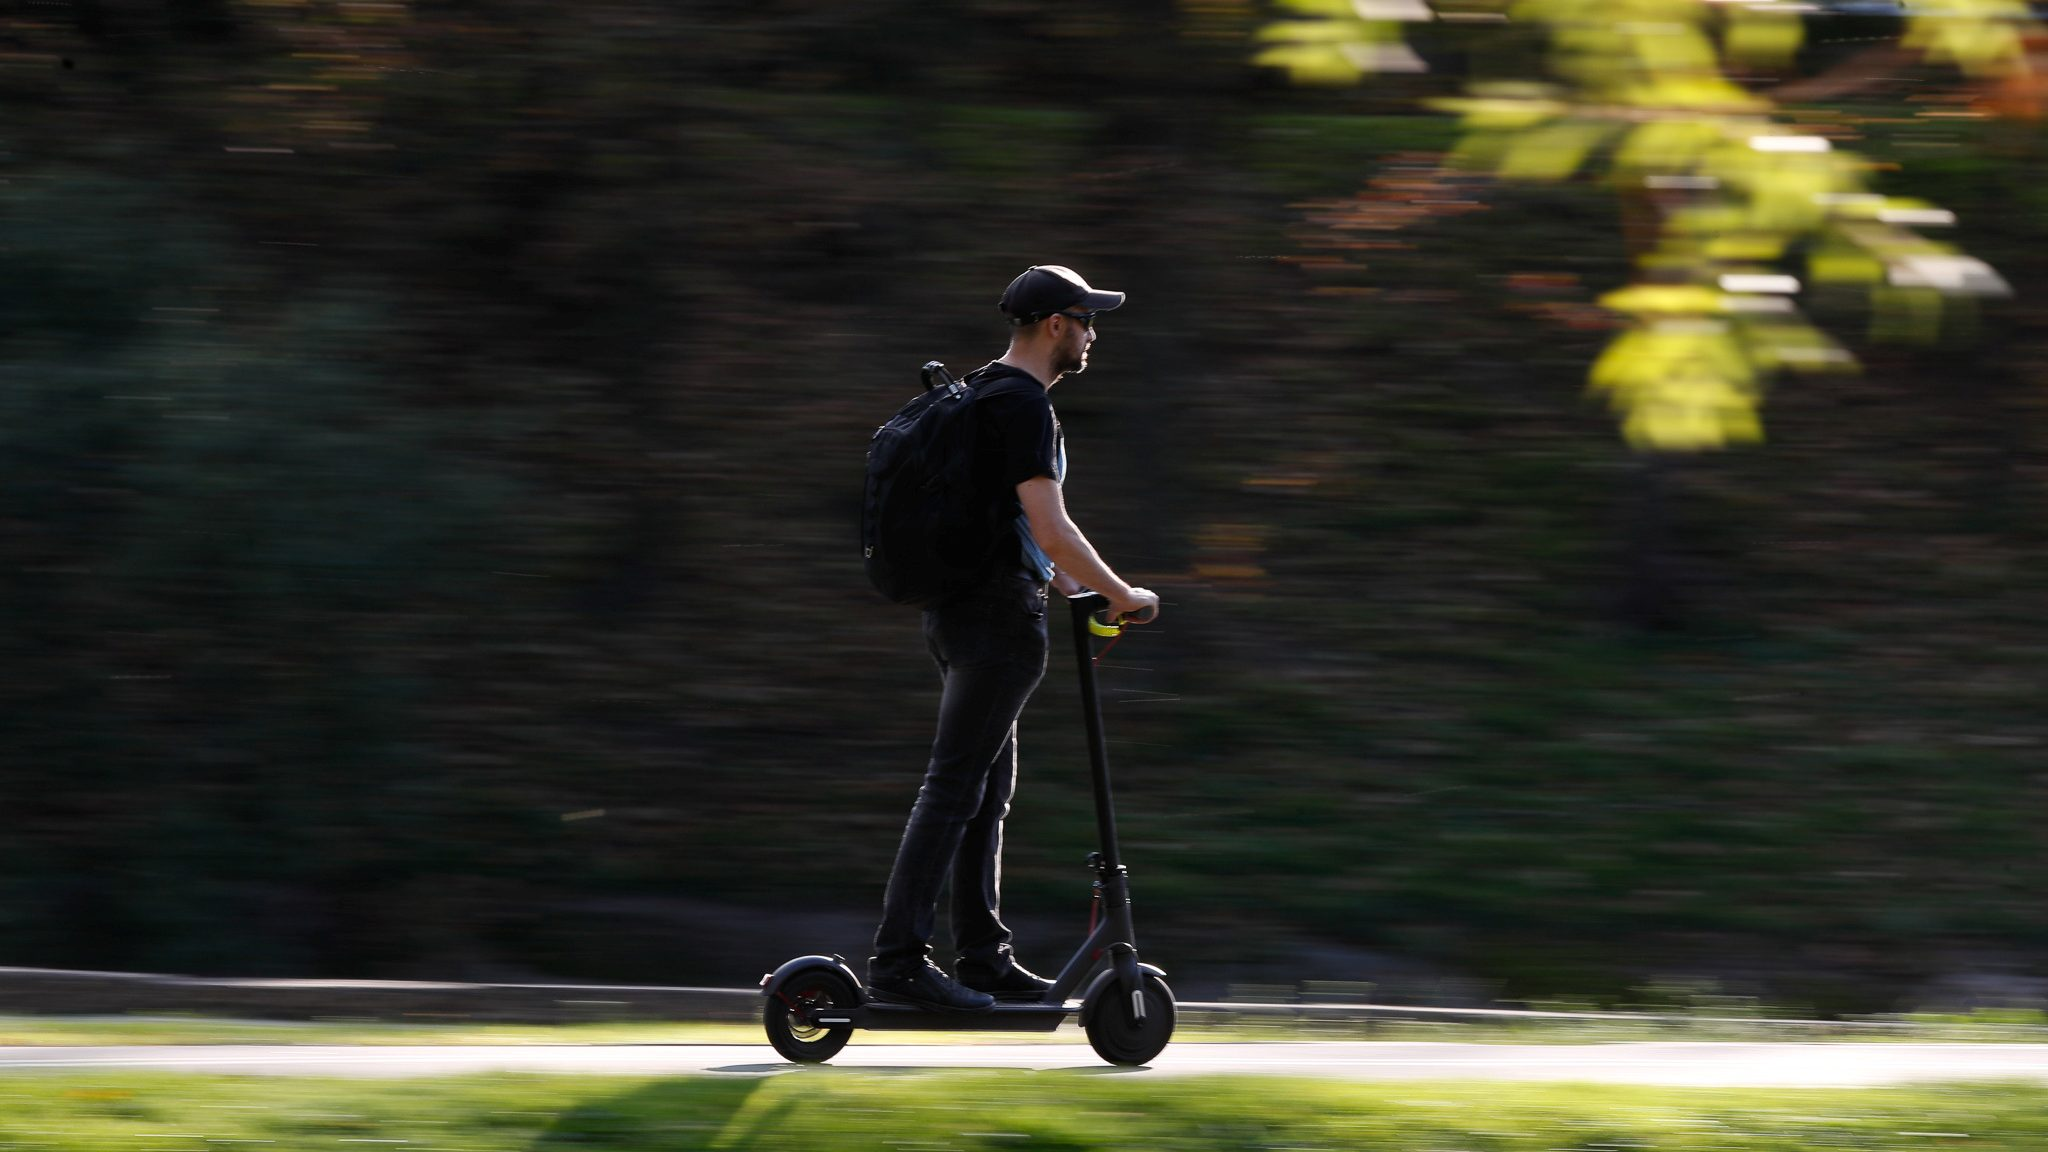 Scooter startups aren't raising money like they used to — Quartz